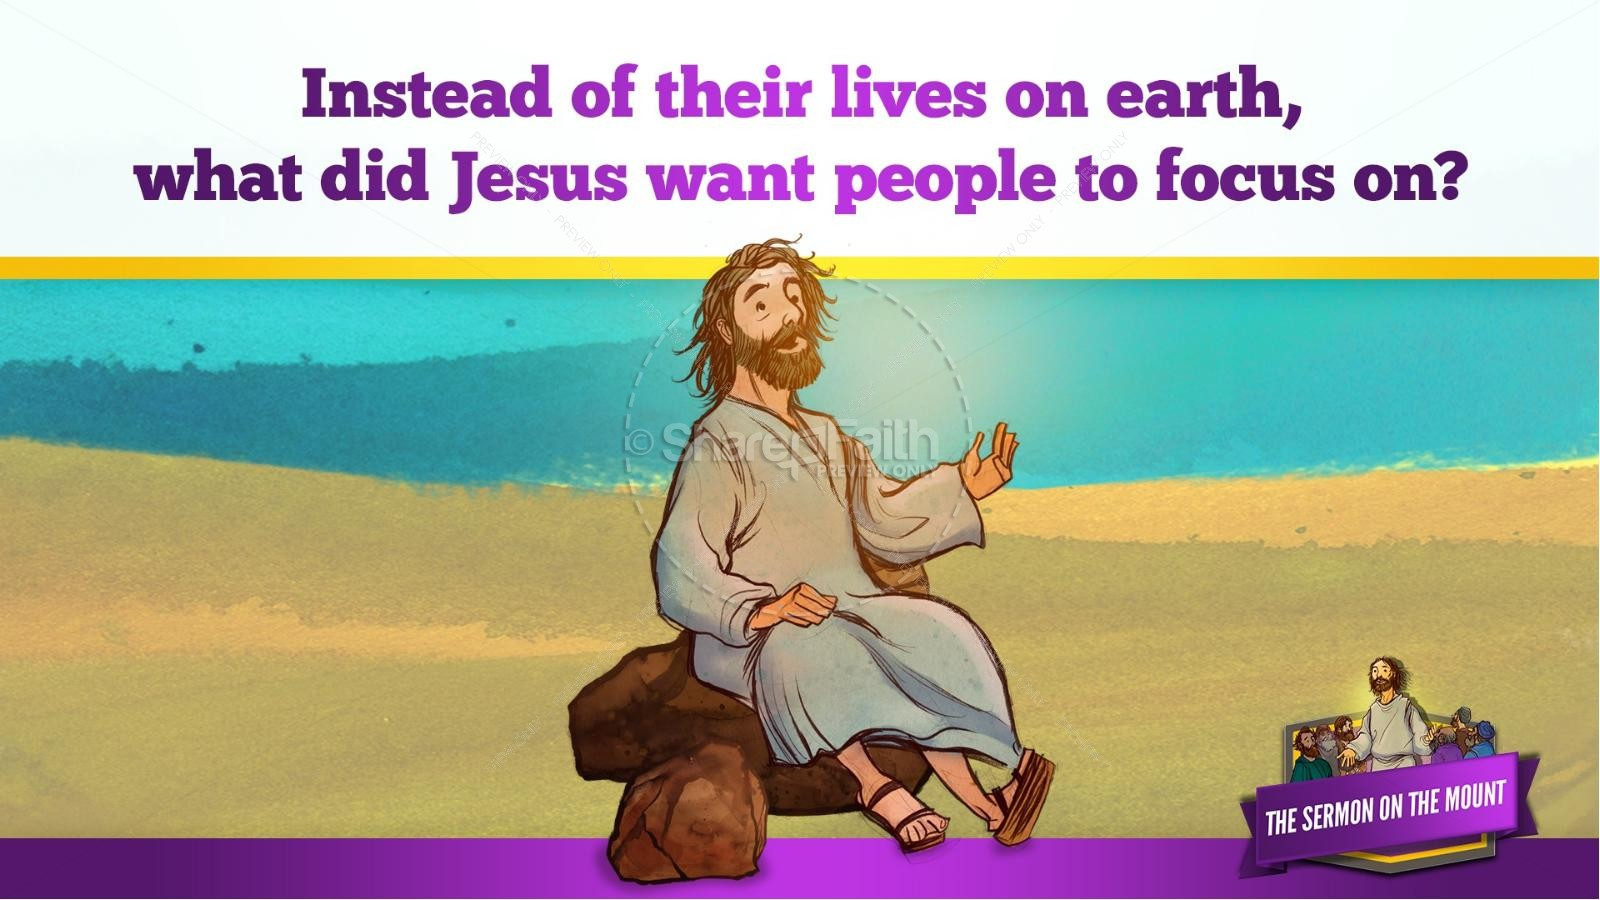 Sermon On the Mount (Beatitudes) Kids Bible Story | slide 18